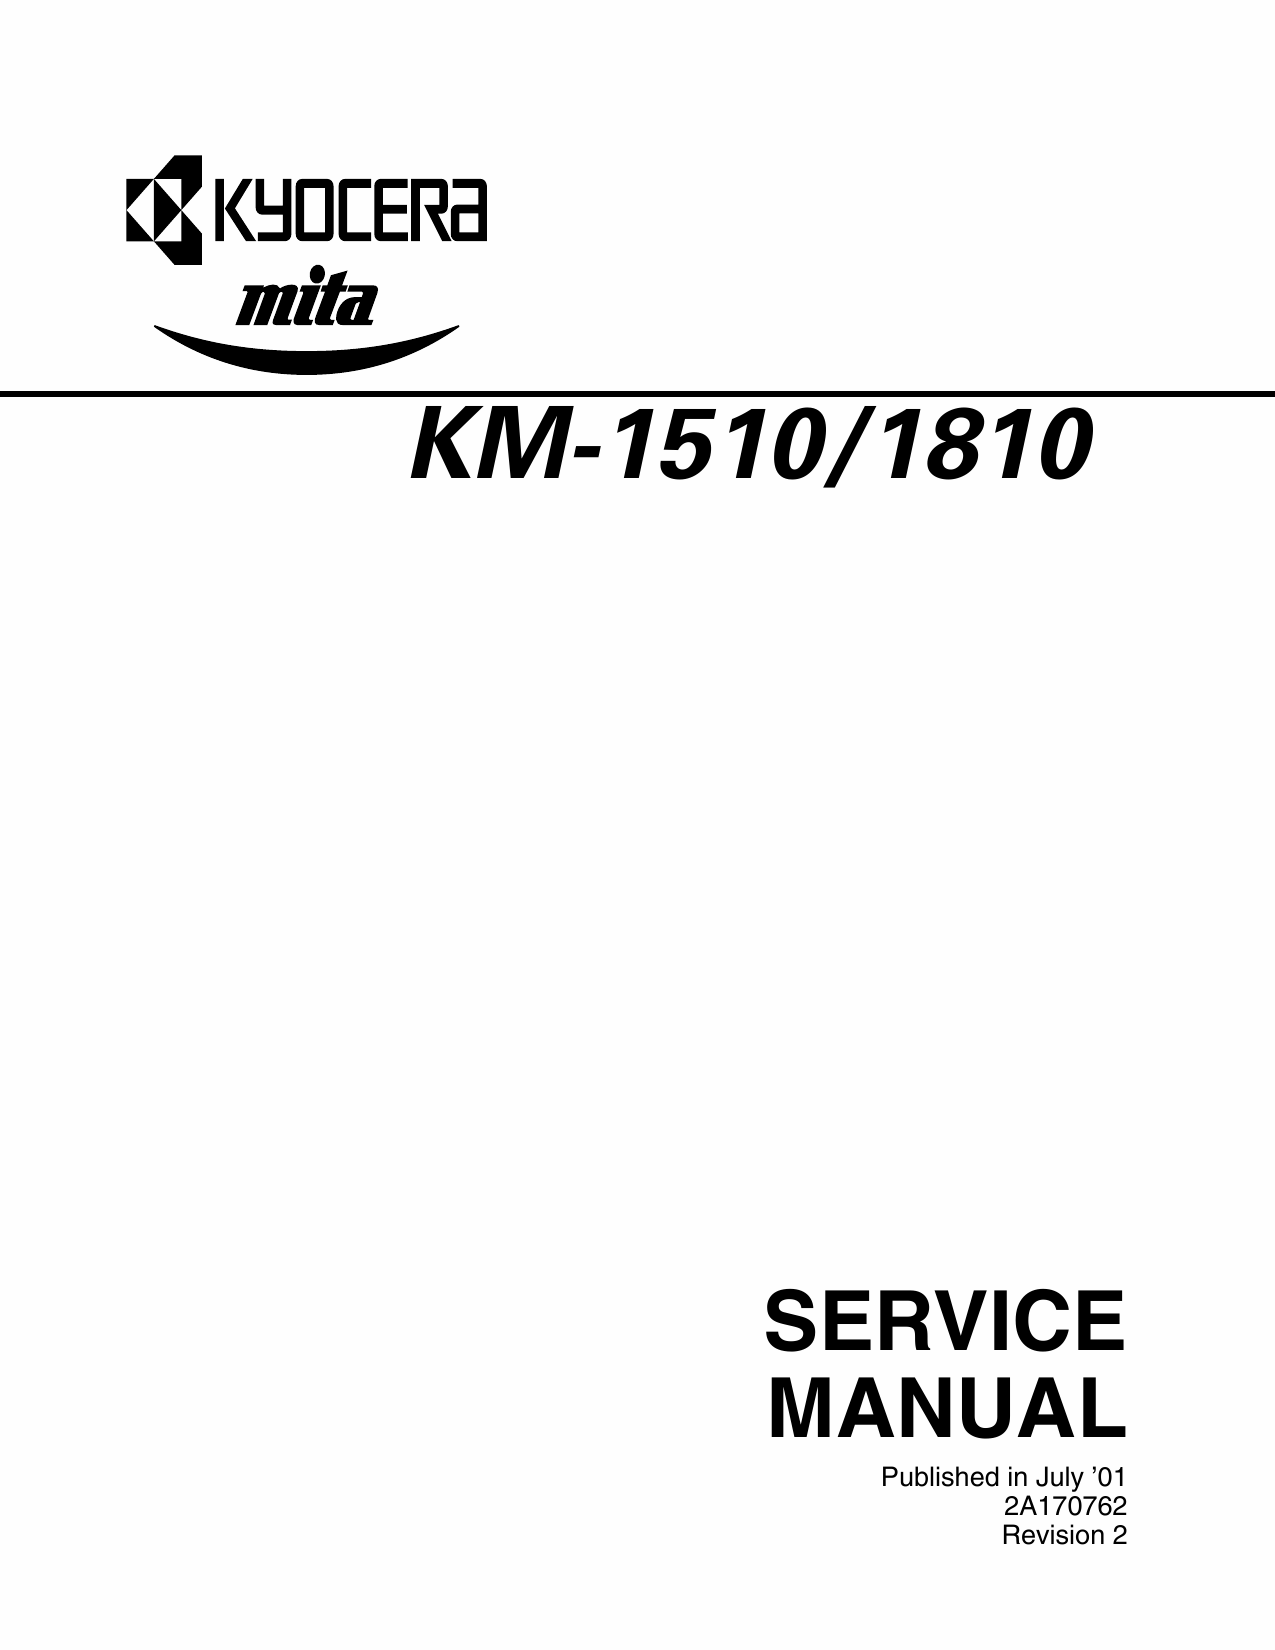 KYOCERA Copier KM-1510 1810 Parts and Service Manual-1